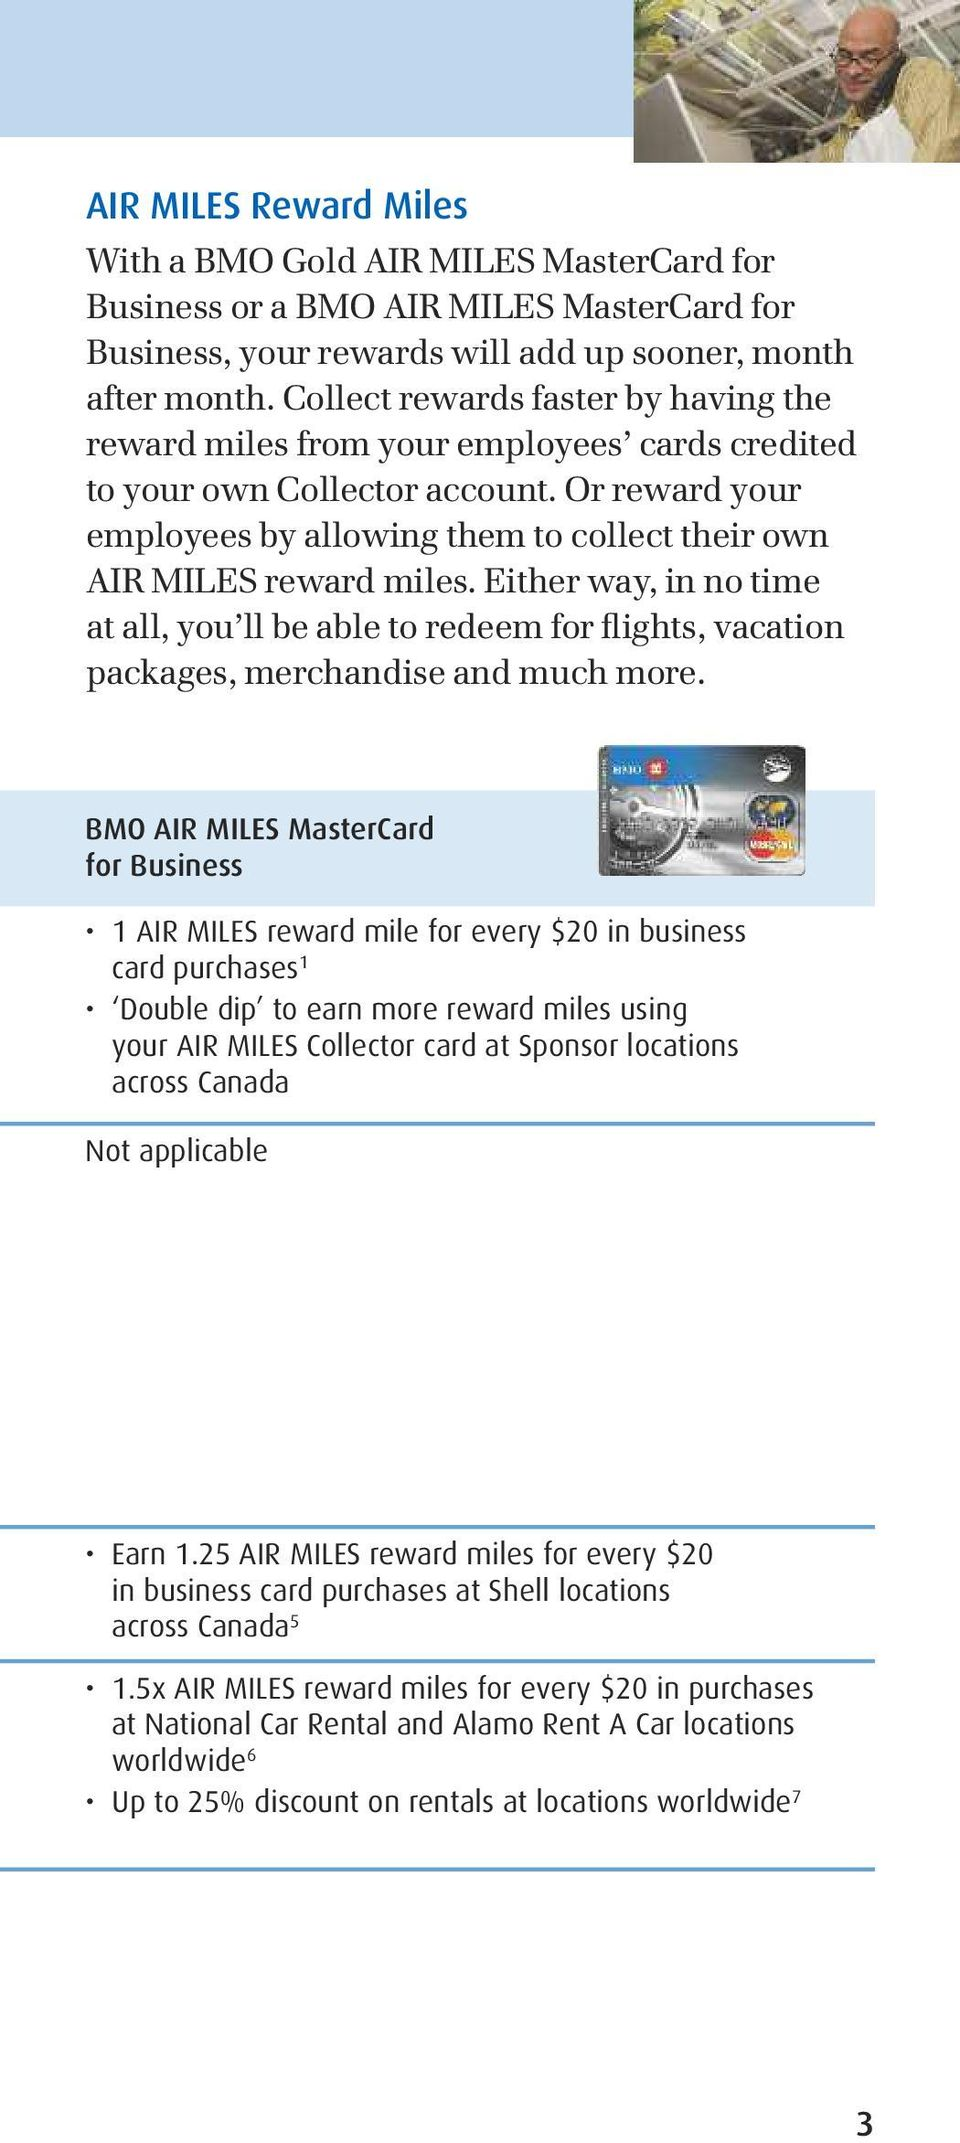 Or reward your employees by allowing them to collect their own AIR MILES reward miles.